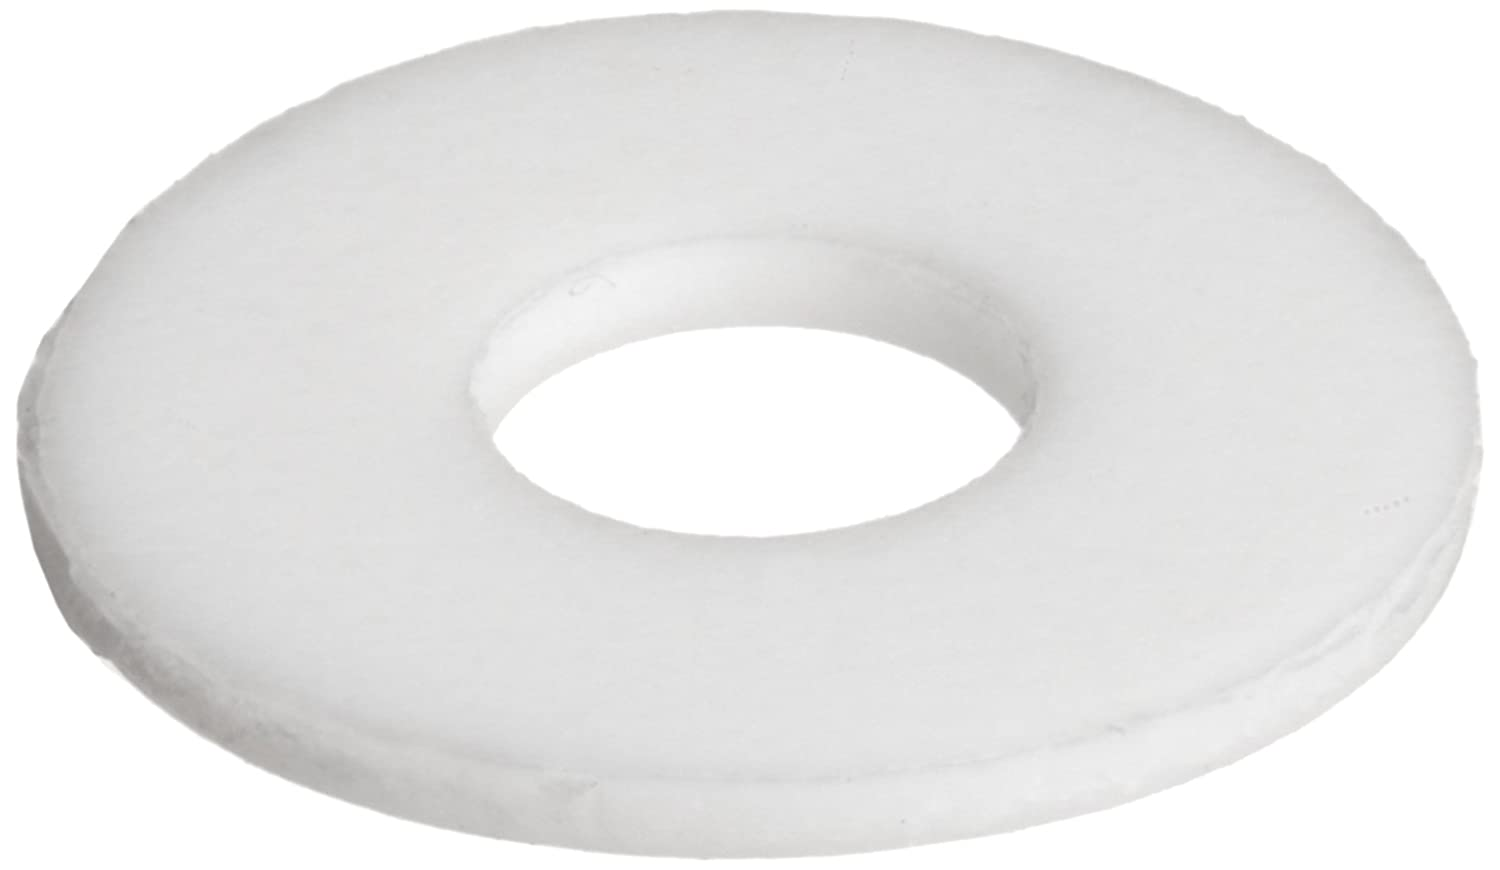 5//16 Hole Size 0.315 ID 0.500 OD 0.062 Nominal Thickness Superior Washer T18-500062NM Pack of 25 Made in US 0.315 ID Flat Washer PTFE 0.500 OD 5//16 Hole Size Polytetrafluoroethylene 0.062 Nominal Thickness